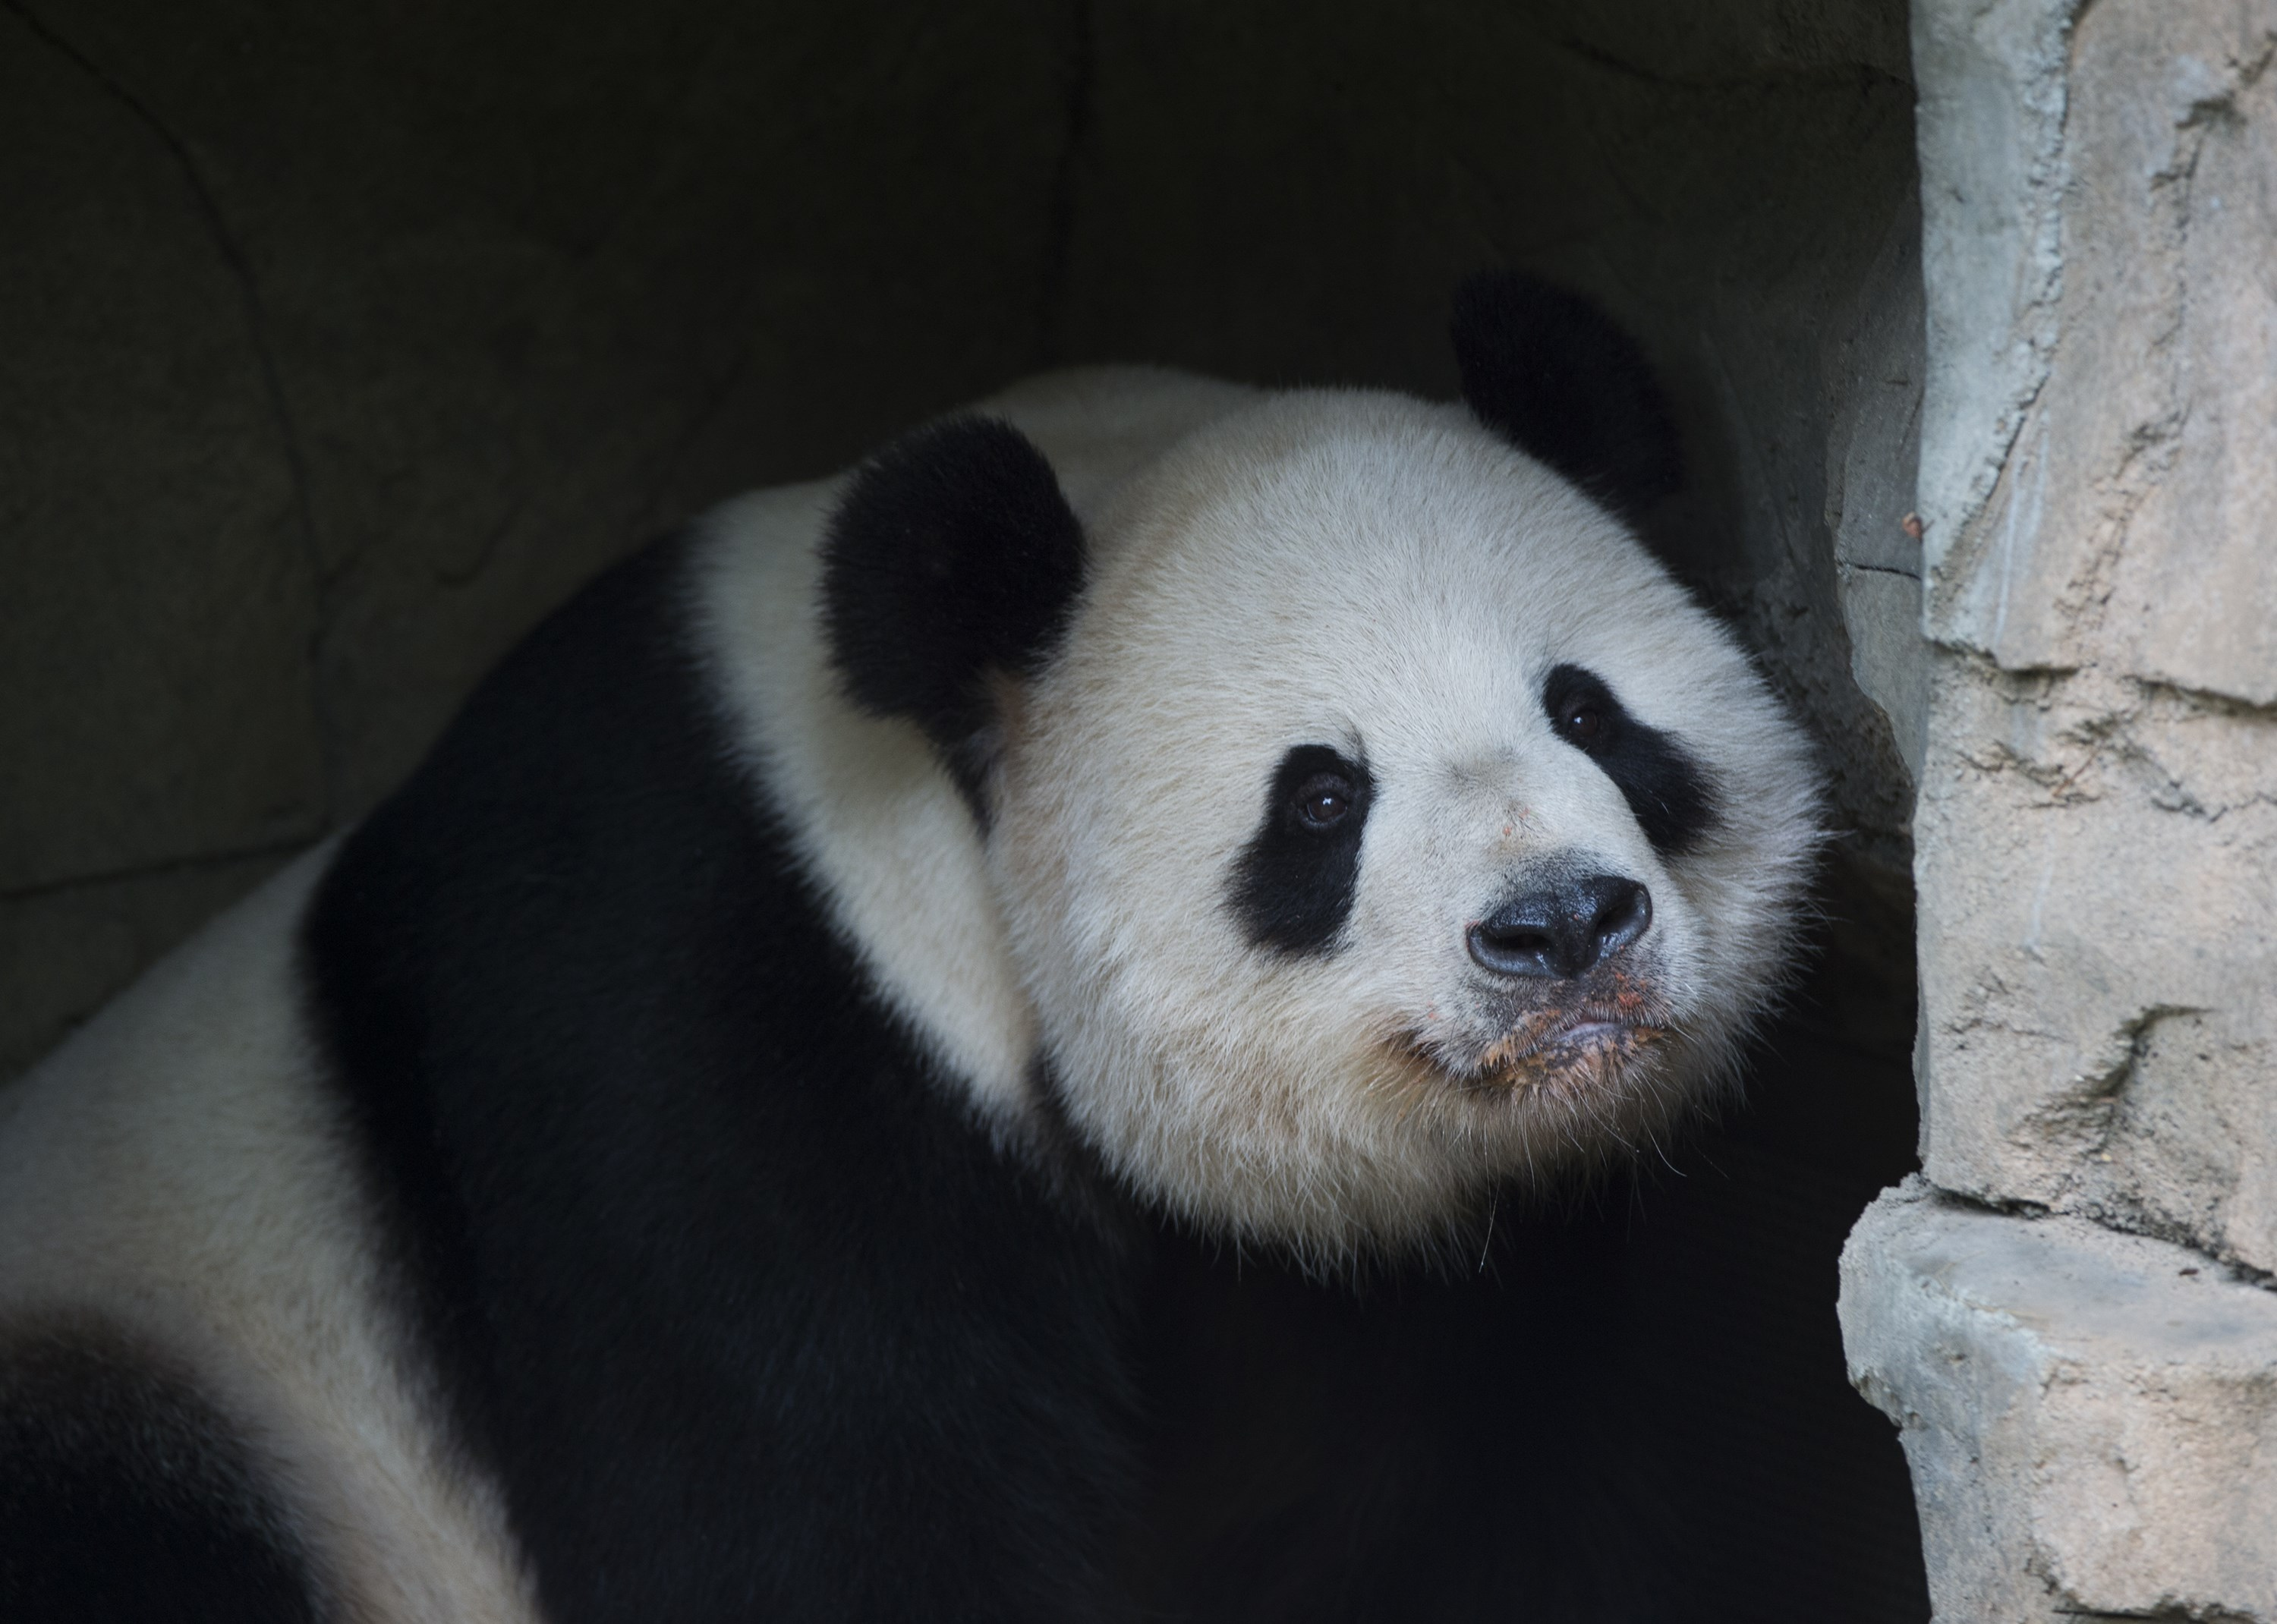 Giant Panda Tian Tian rests at the Smithsonian National Zoo on Sept. 25, 2015 in Washington, DC.